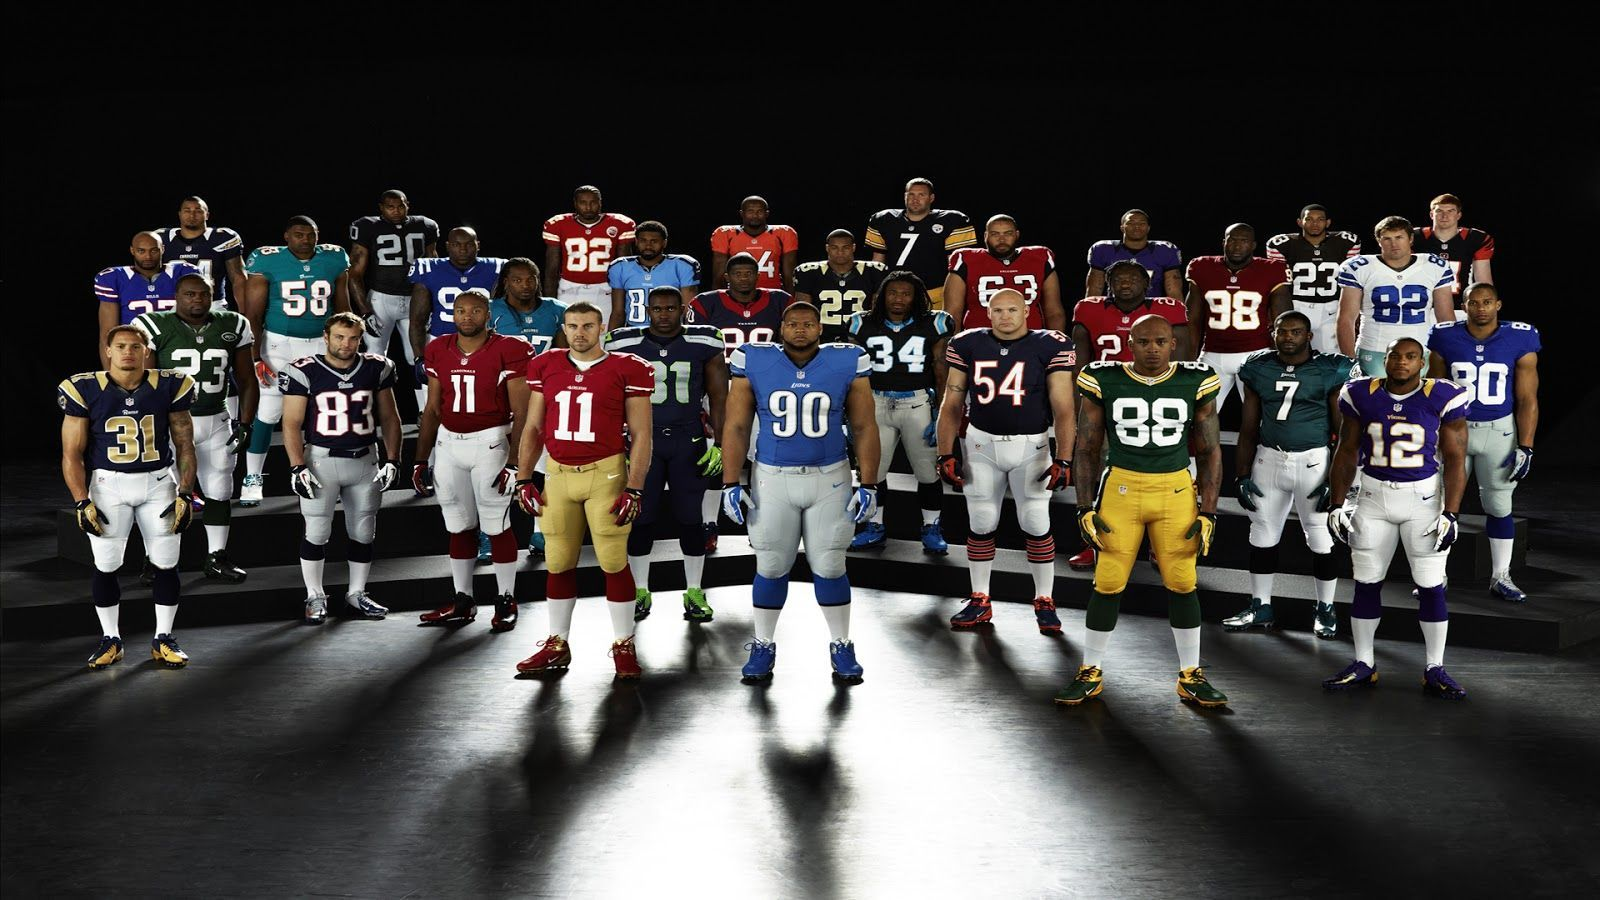 Nfl Football Players Wallpapers